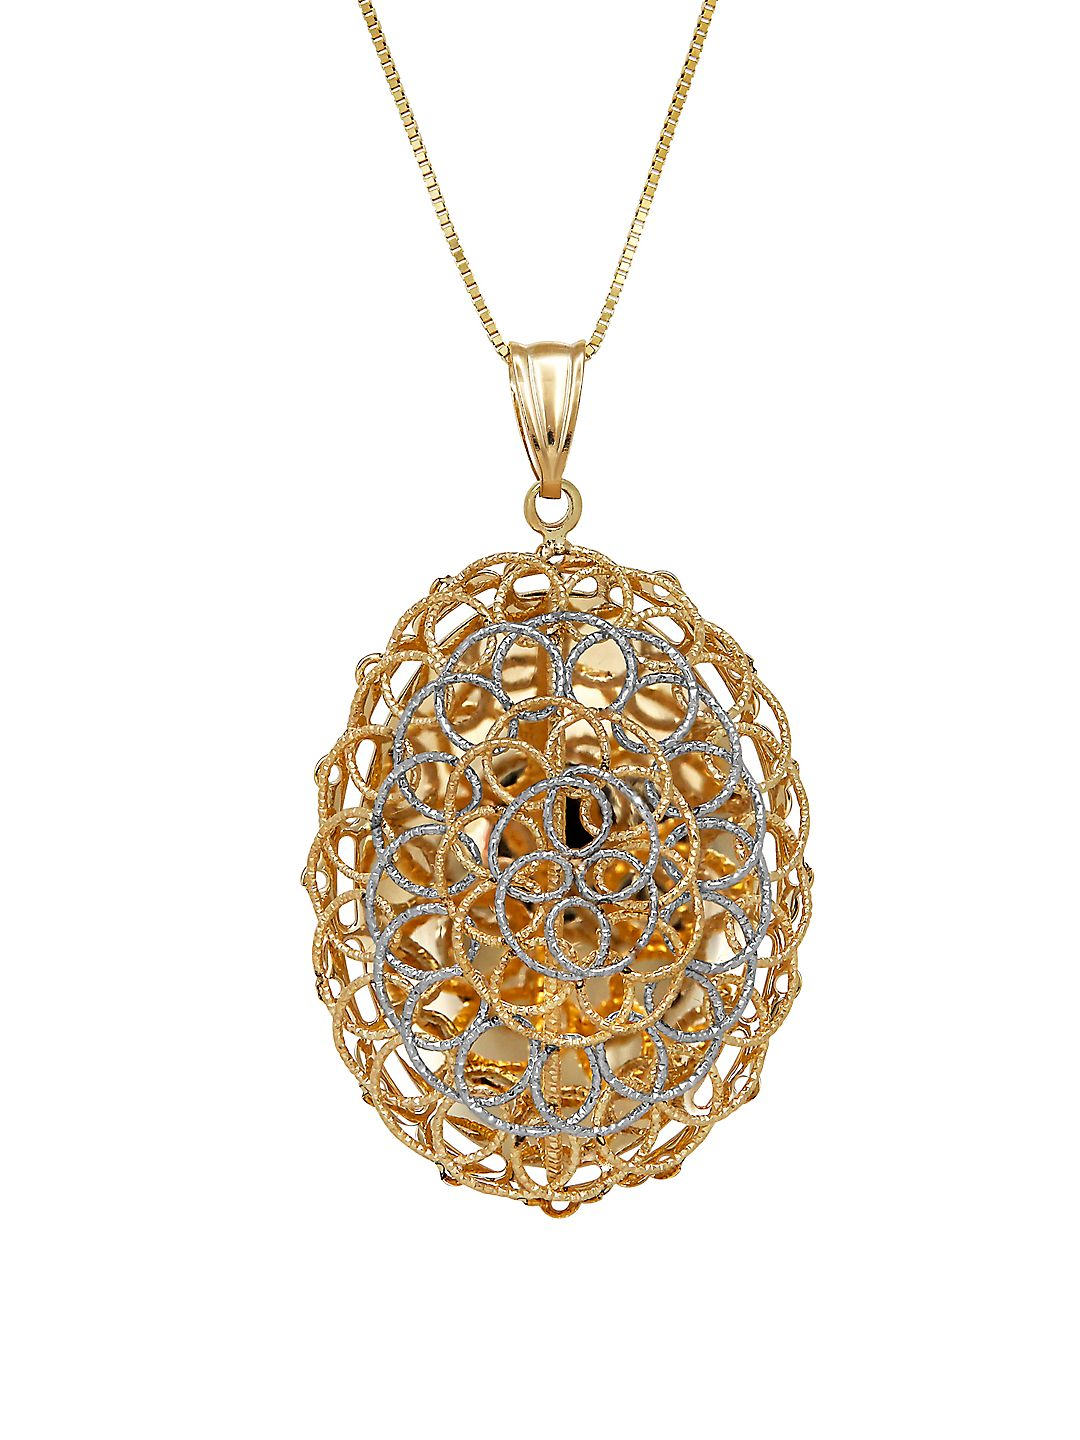 14K Yellow Gold and White Gold Mesh Swirl Necklace